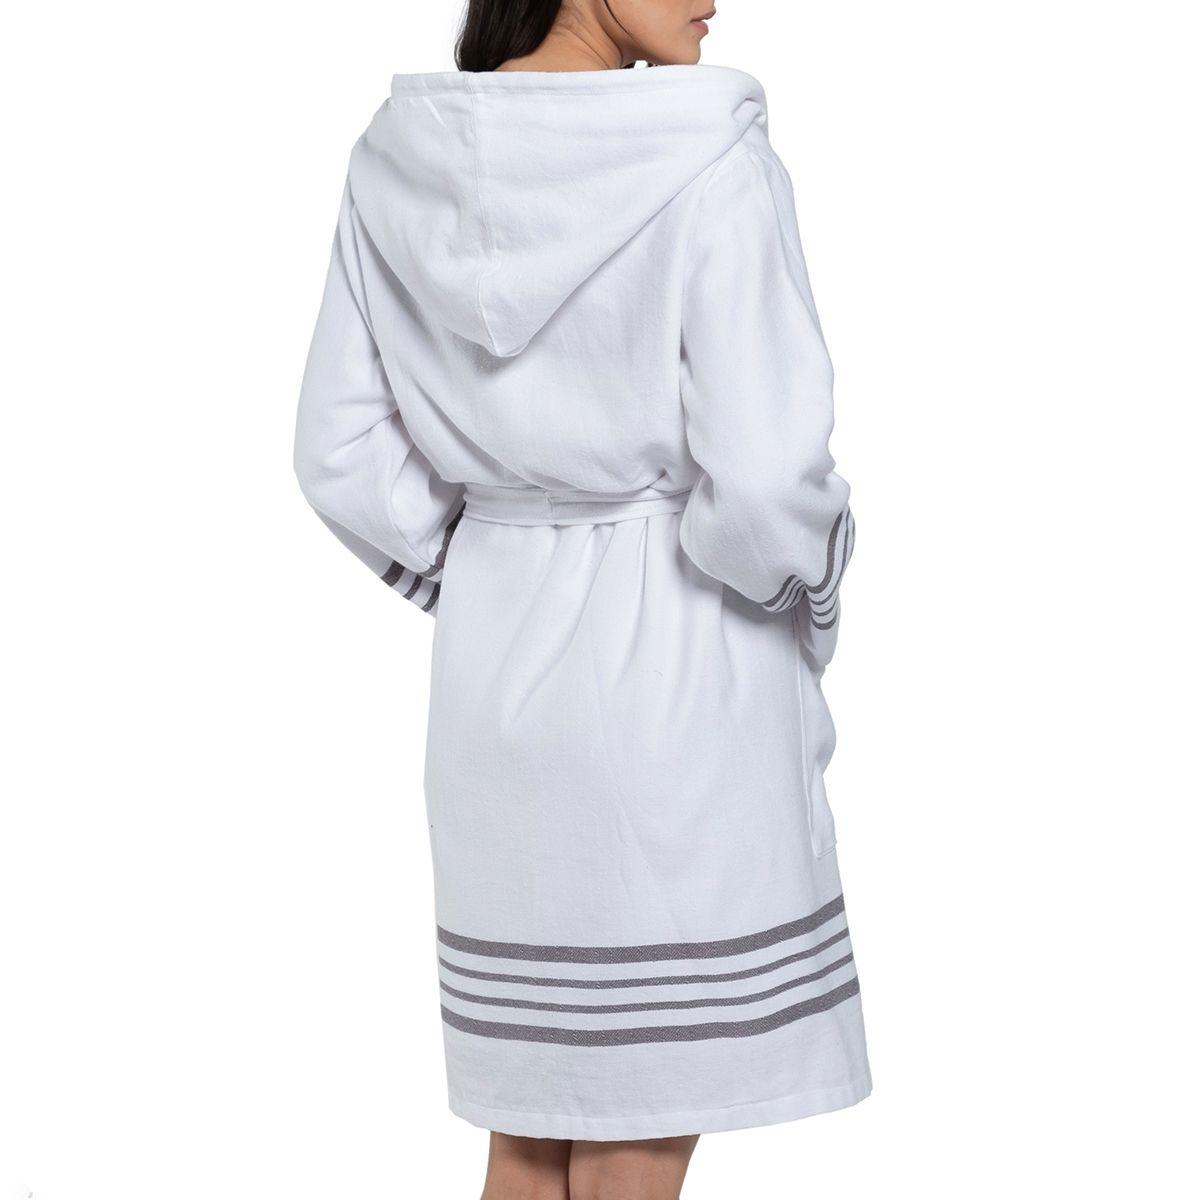 Bathrobe White Sultan with hood & terry - Dark Grey Stripes